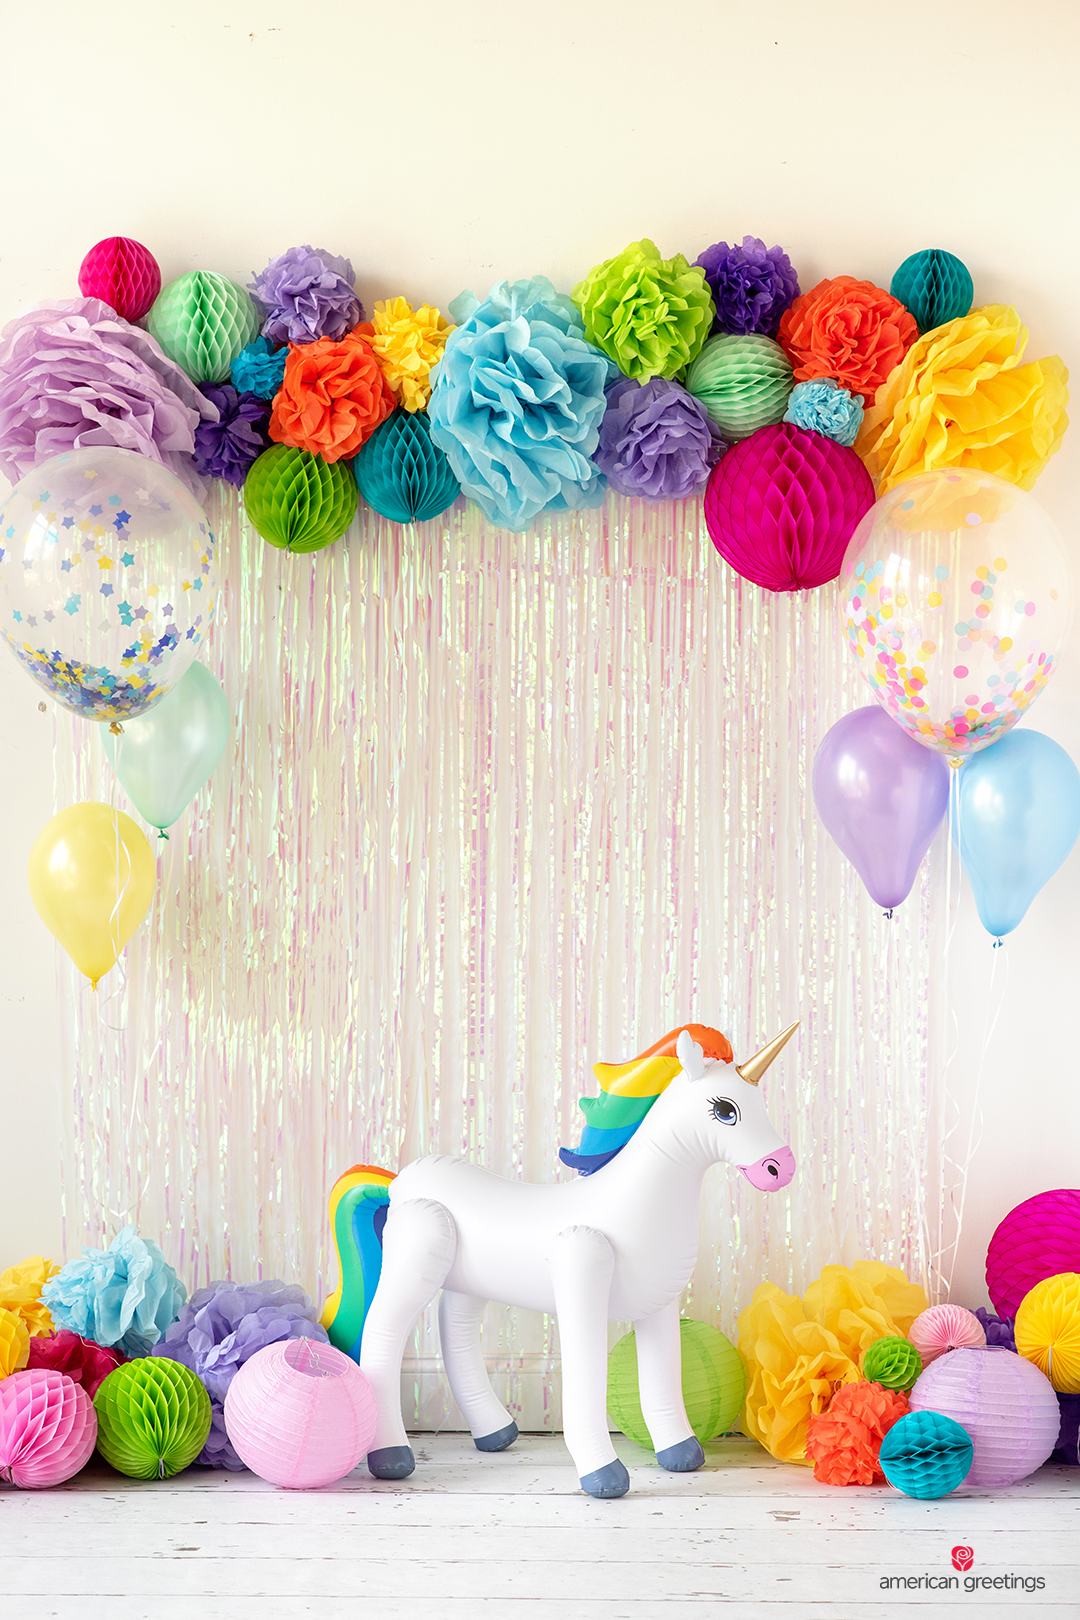 Tissue papper pom-poms and honeycombs in various colors and sized and with some oversized confetti-balloons and in the middle an inflatable unicorn.